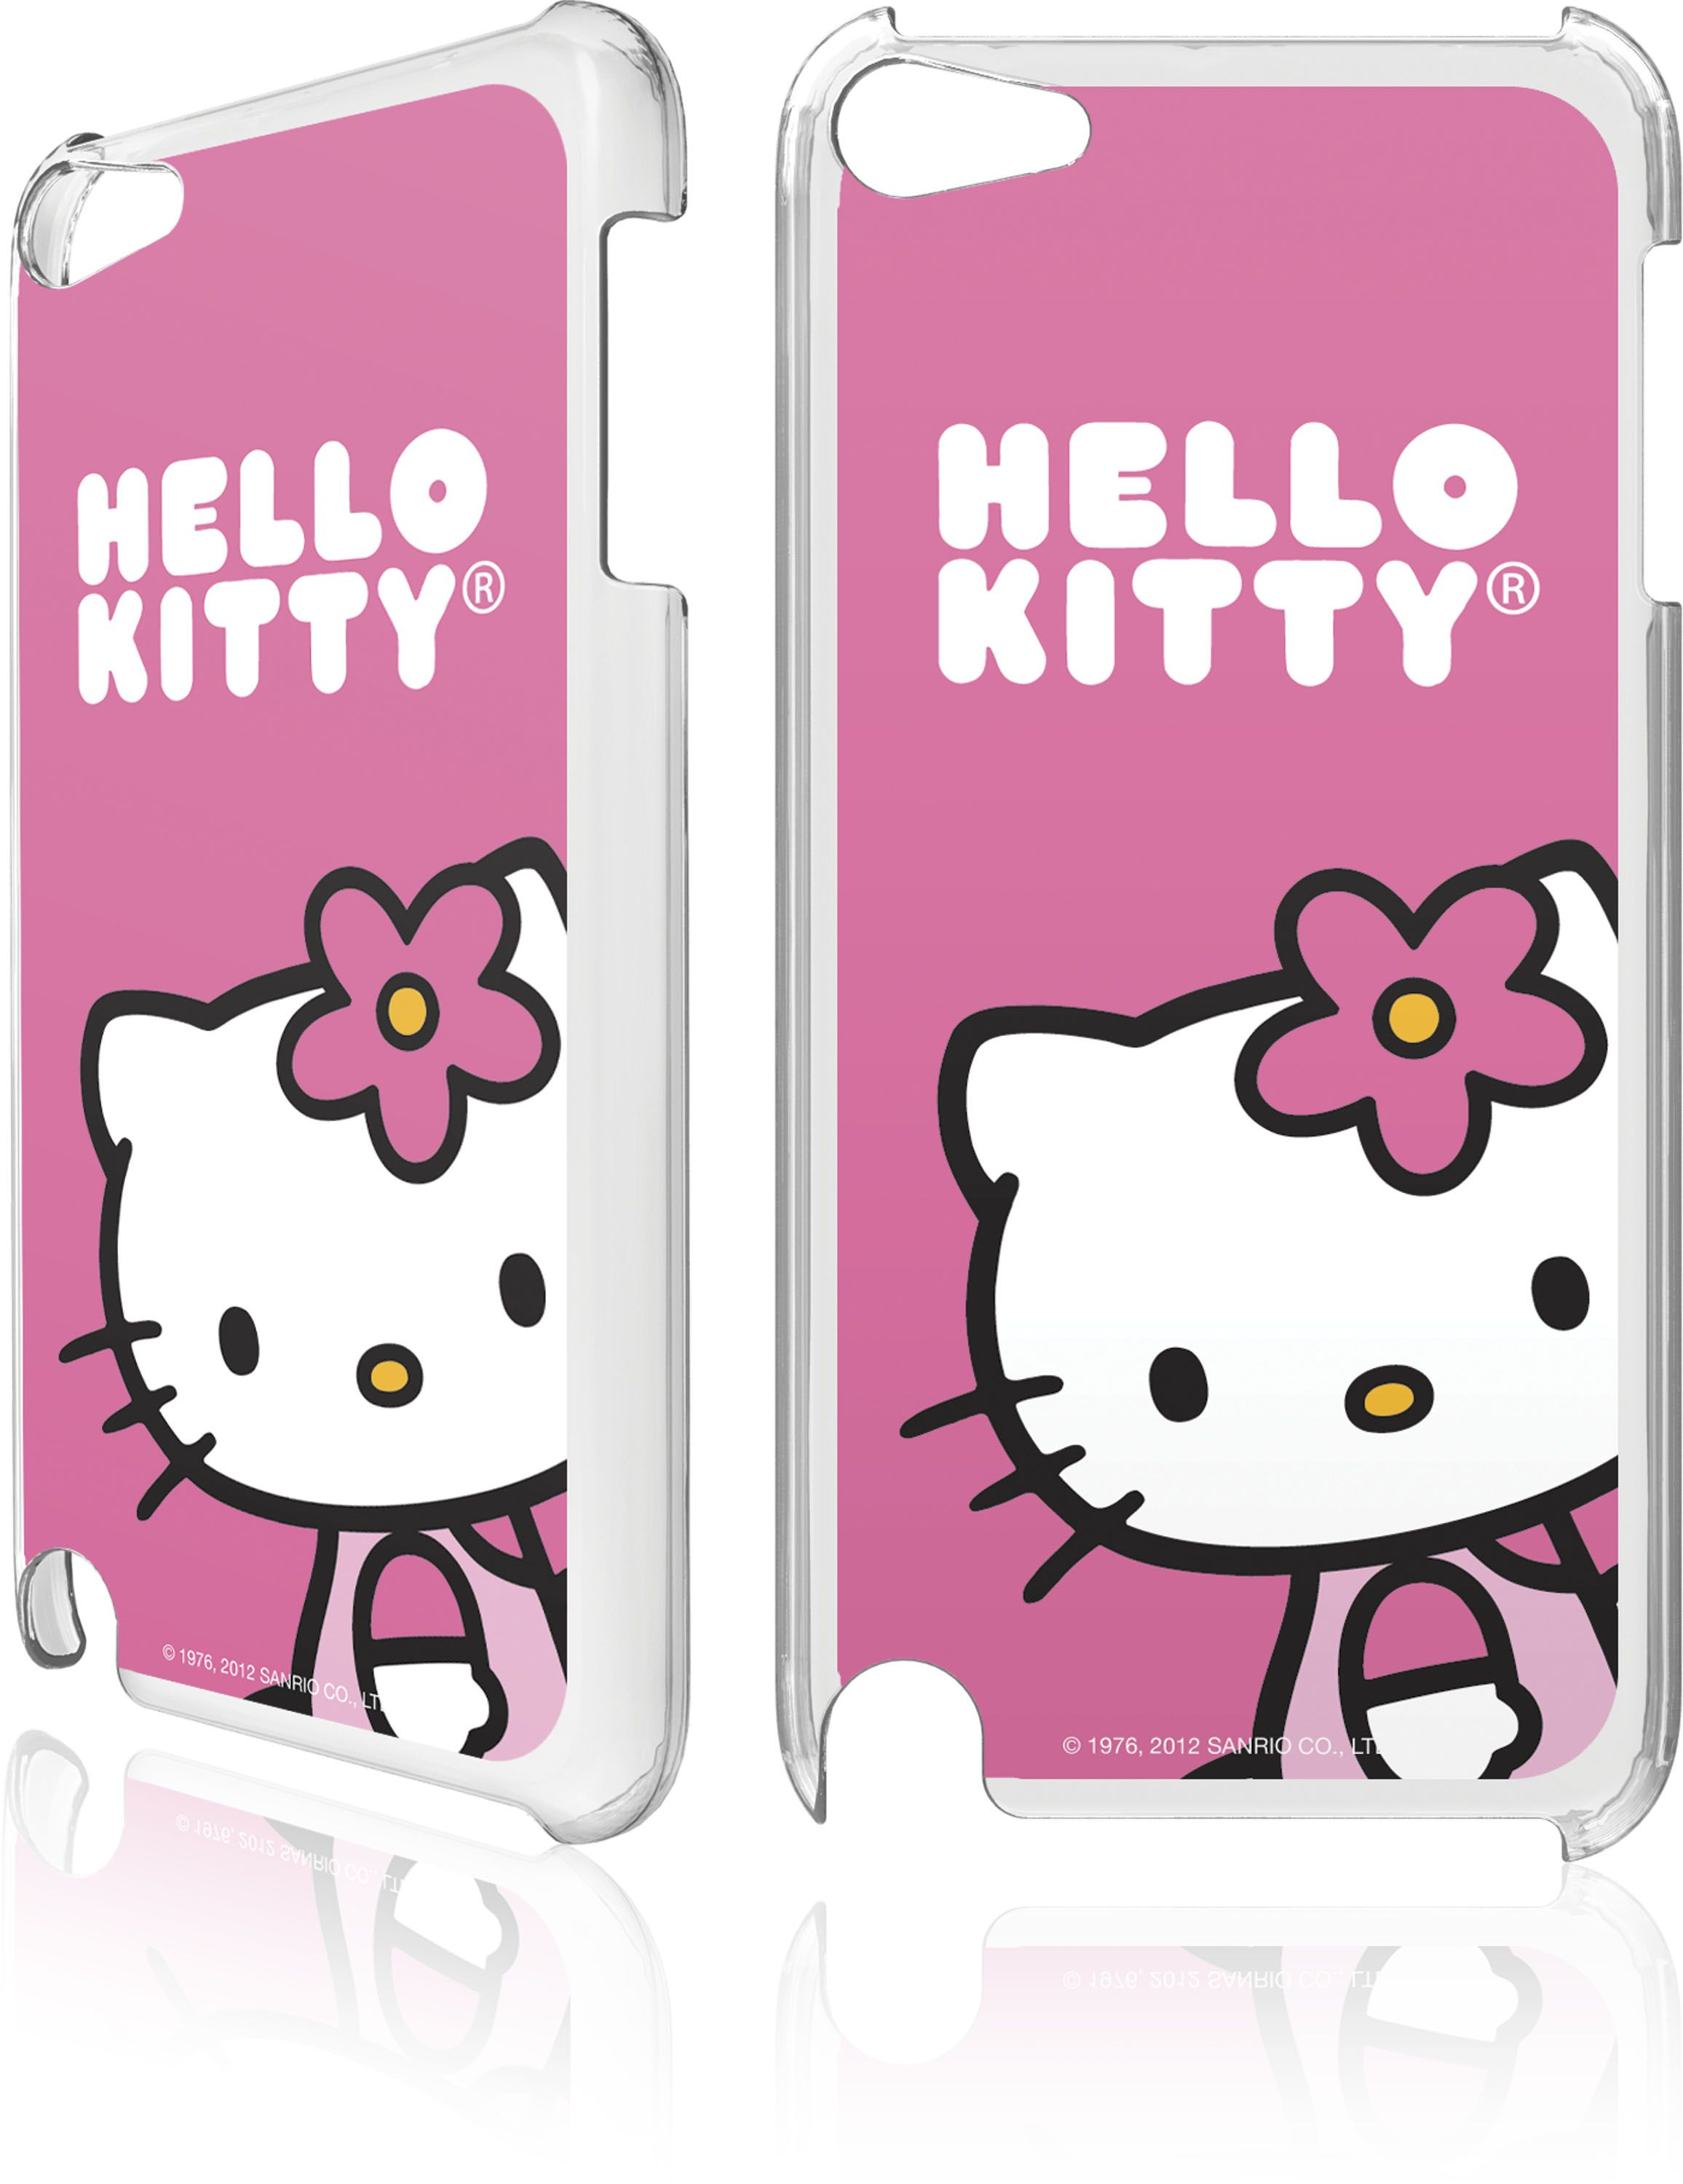 Simple Wallpaper Hello Kitty Ipod Touch - 0a02045a7fecb9c3915f27476ab02cdd  Trends_879372.jpg